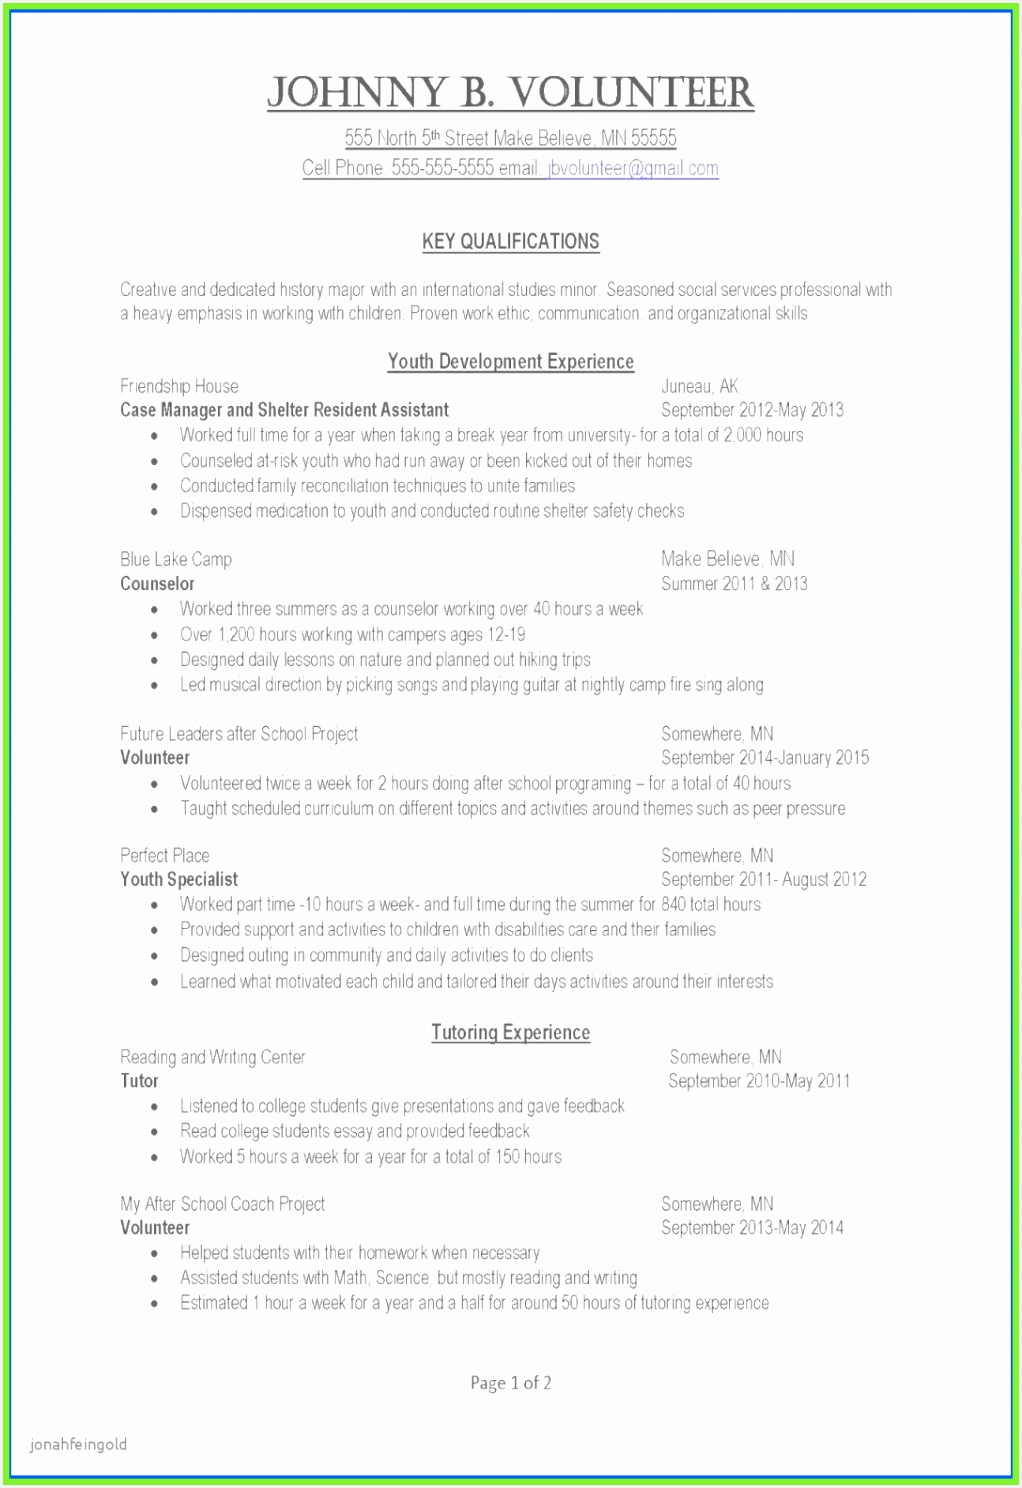 International social Worker Sample Resume Bnede Beautiful 16 Inspirational Student Cover Letter Template Of International social Worker Sample Resume Ngdjg Fresh social Worker Resume Sample Elegant social Worker Resume Samples